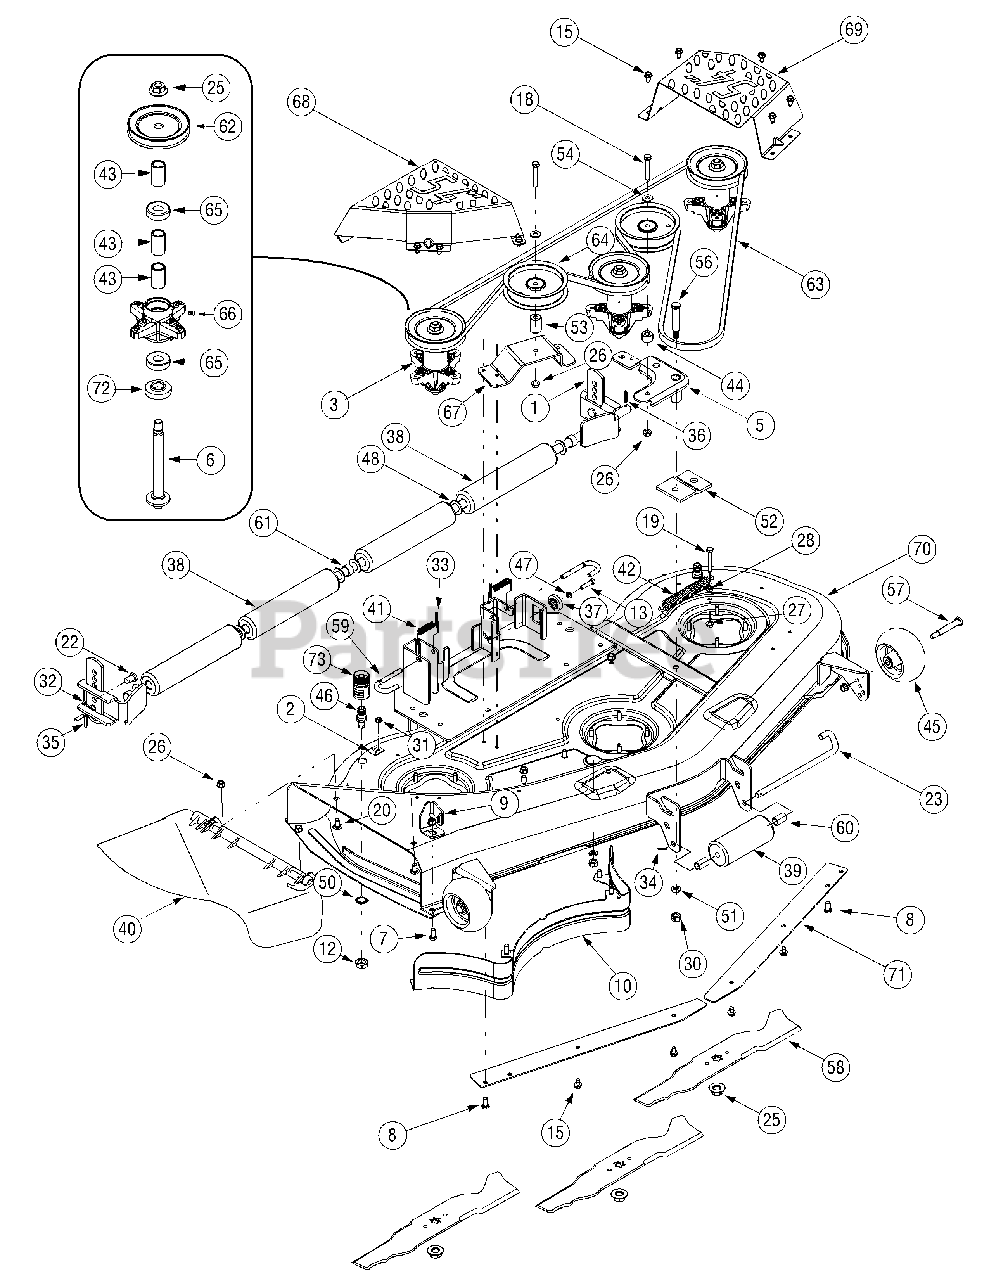 Cub Cadet Parts on the Mower Deck 54 inch Diagram for GT